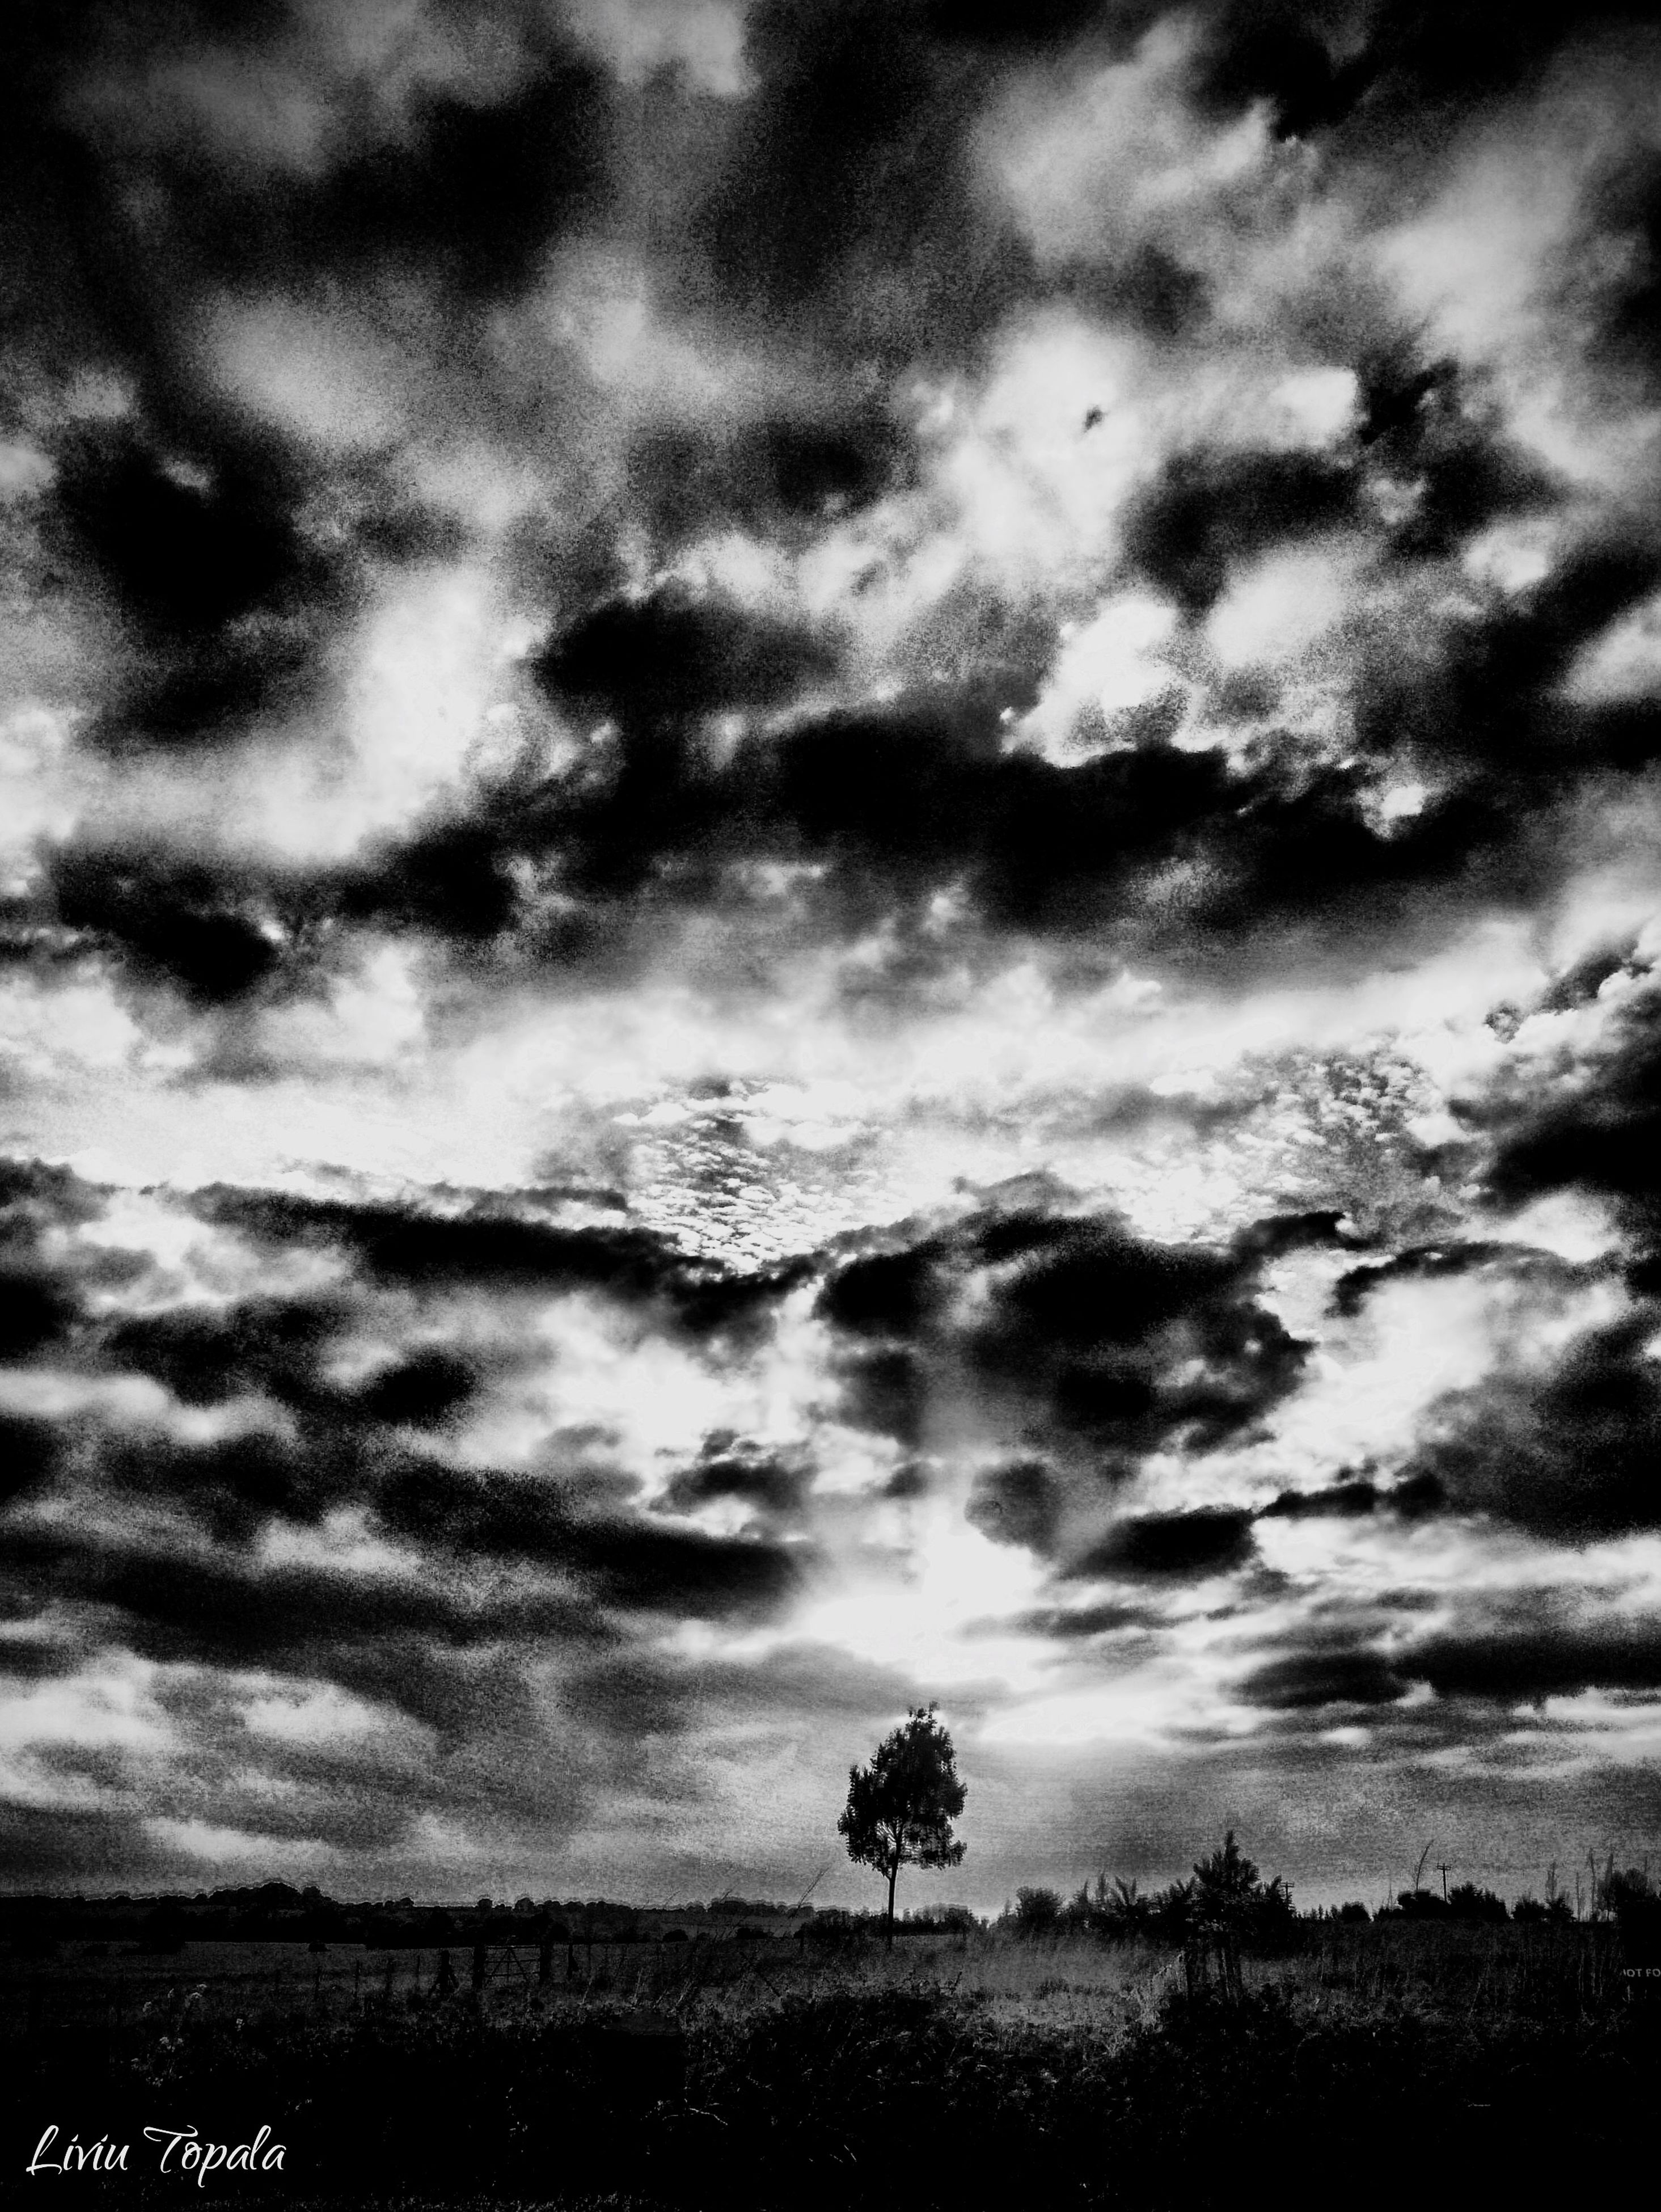 sky, cloud - sky, cloudy, scenics, tranquil scene, tranquility, beauty in nature, weather, tree, landscape, nature, overcast, cloud, silhouette, dramatic sky, cloudscape, field, idyllic, storm cloud, atmospheric mood